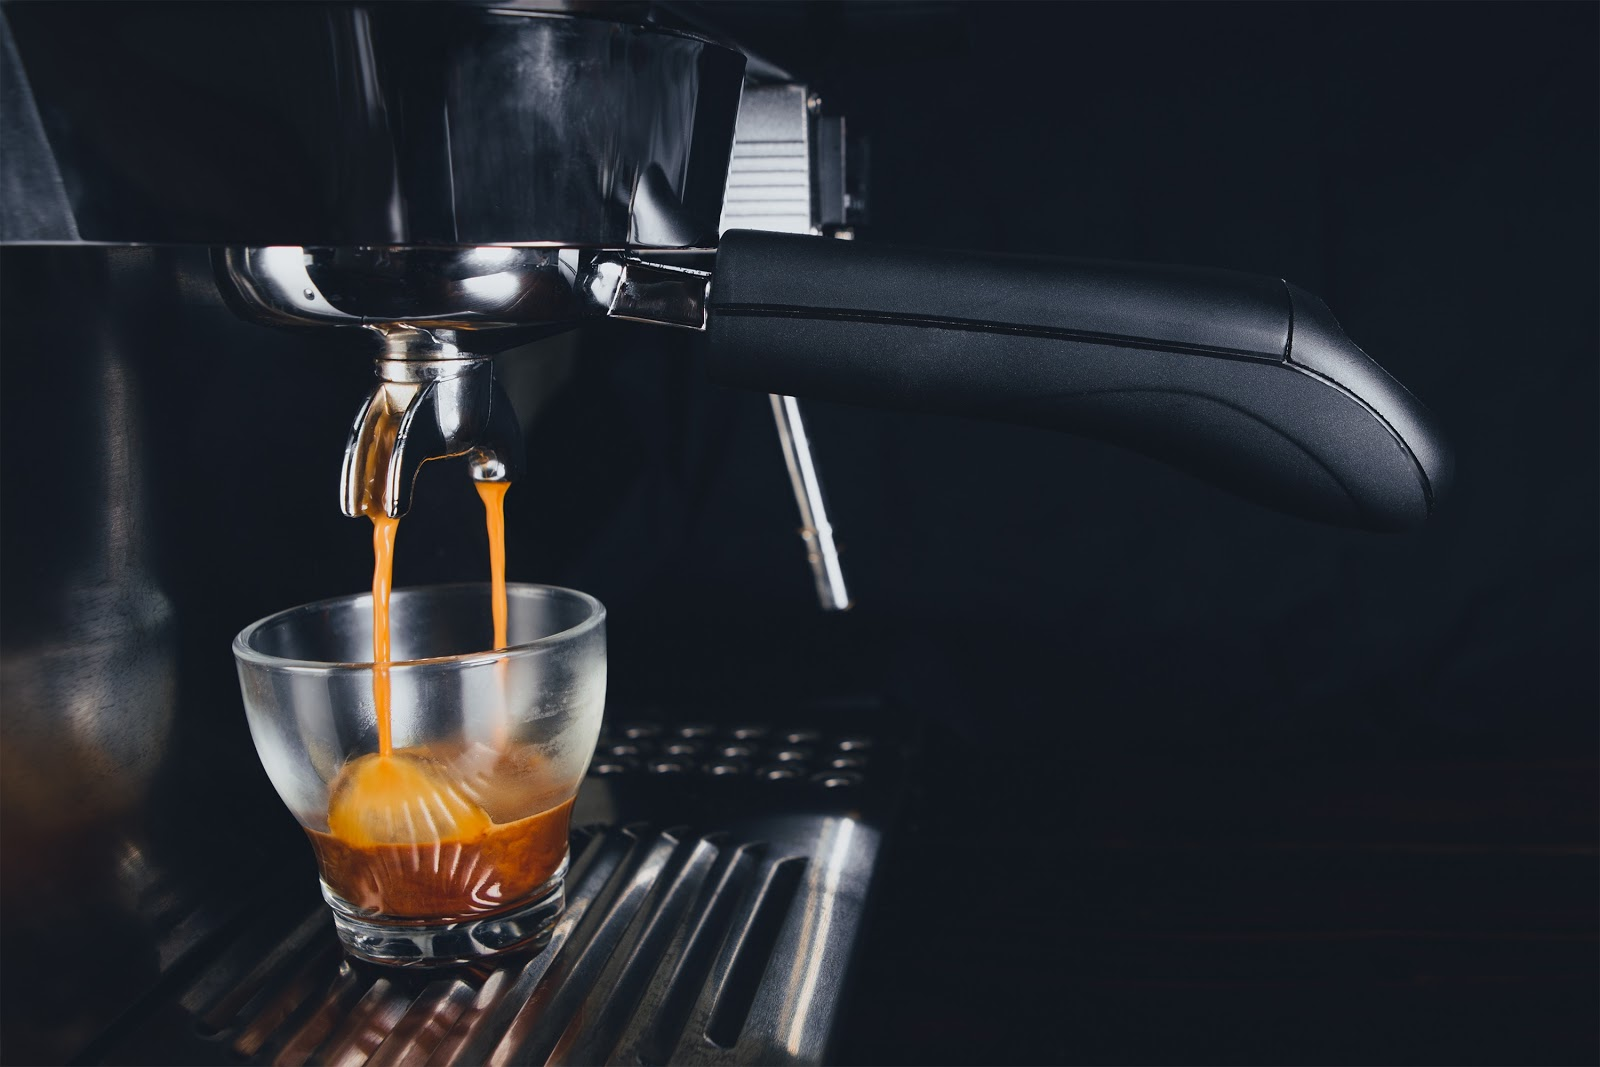 espresso being extracted from a black coffee machine